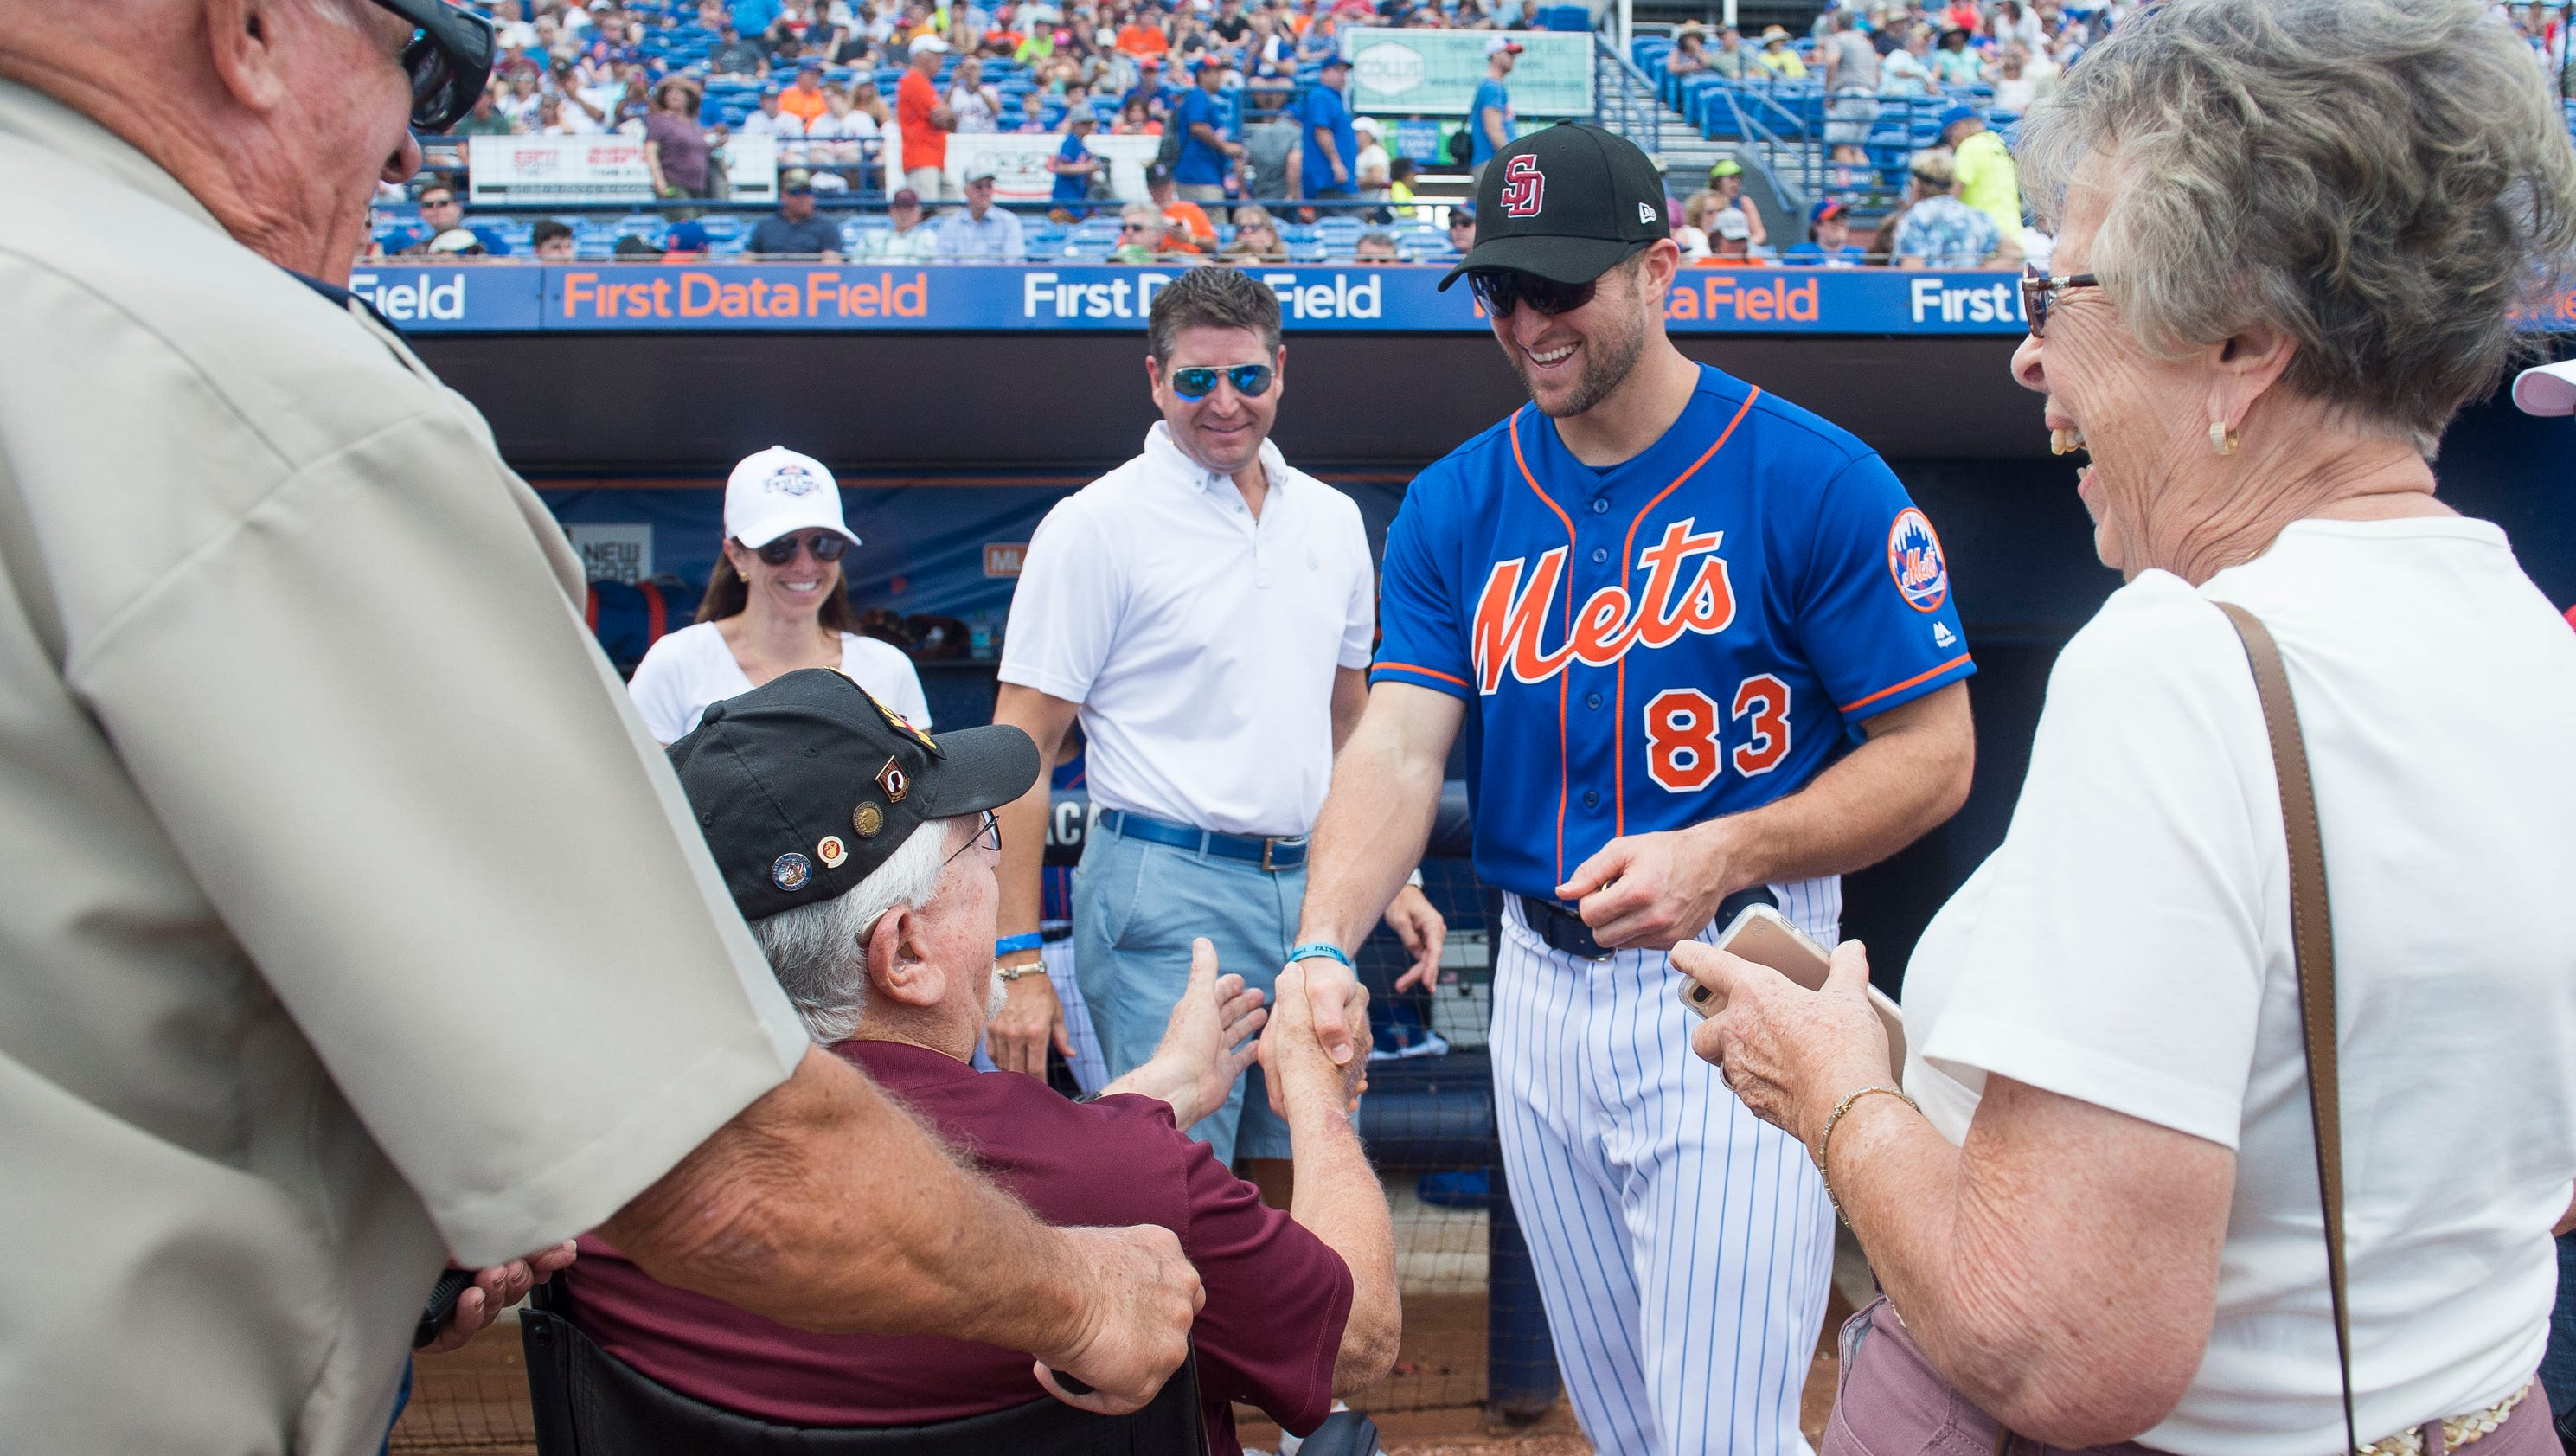 Fans flock to first data field for first mets spring training game kristyandbryce Gallery